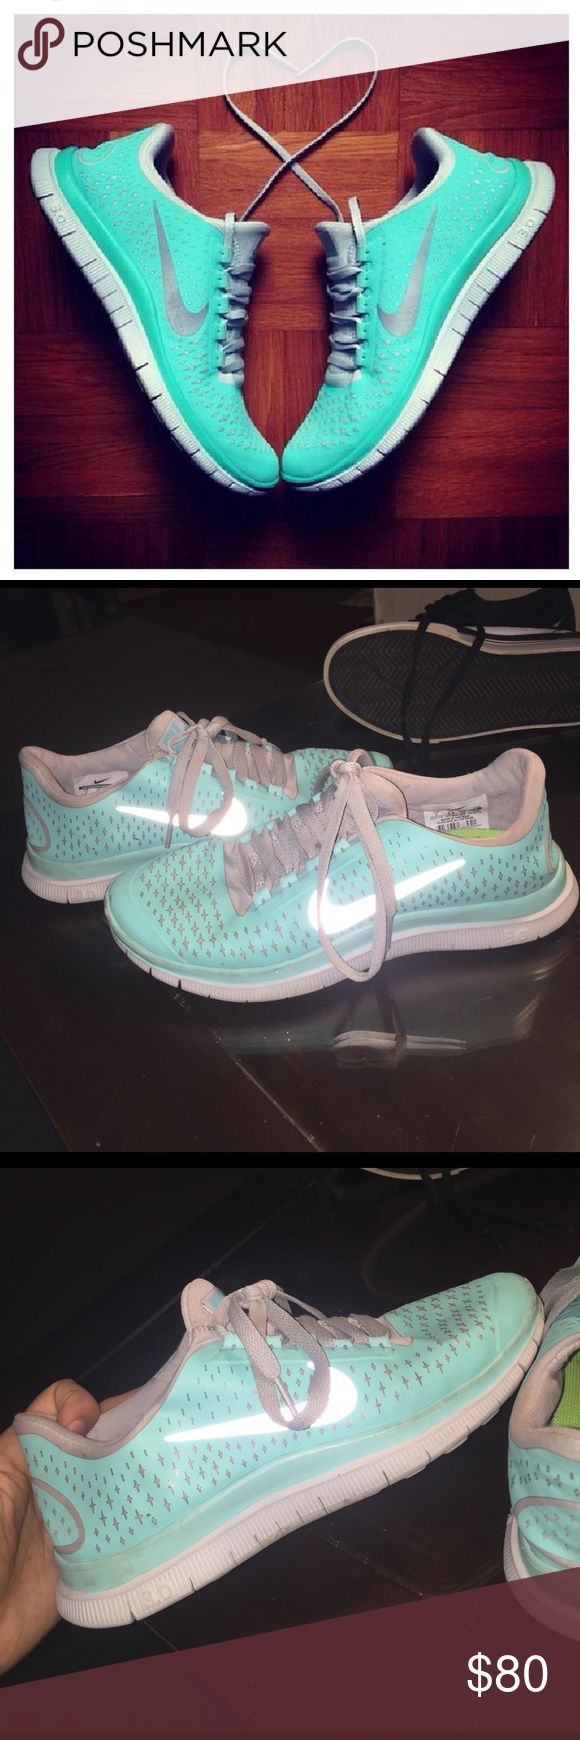 😍 NIKE FREE 3.0 Tiffany Blue 😍 limited edition Tiffany Blue Nike Free 3.0.. very comfortable, durable, and rare. next day shipping. comment any questions Nike Shoes Athletic Shoes